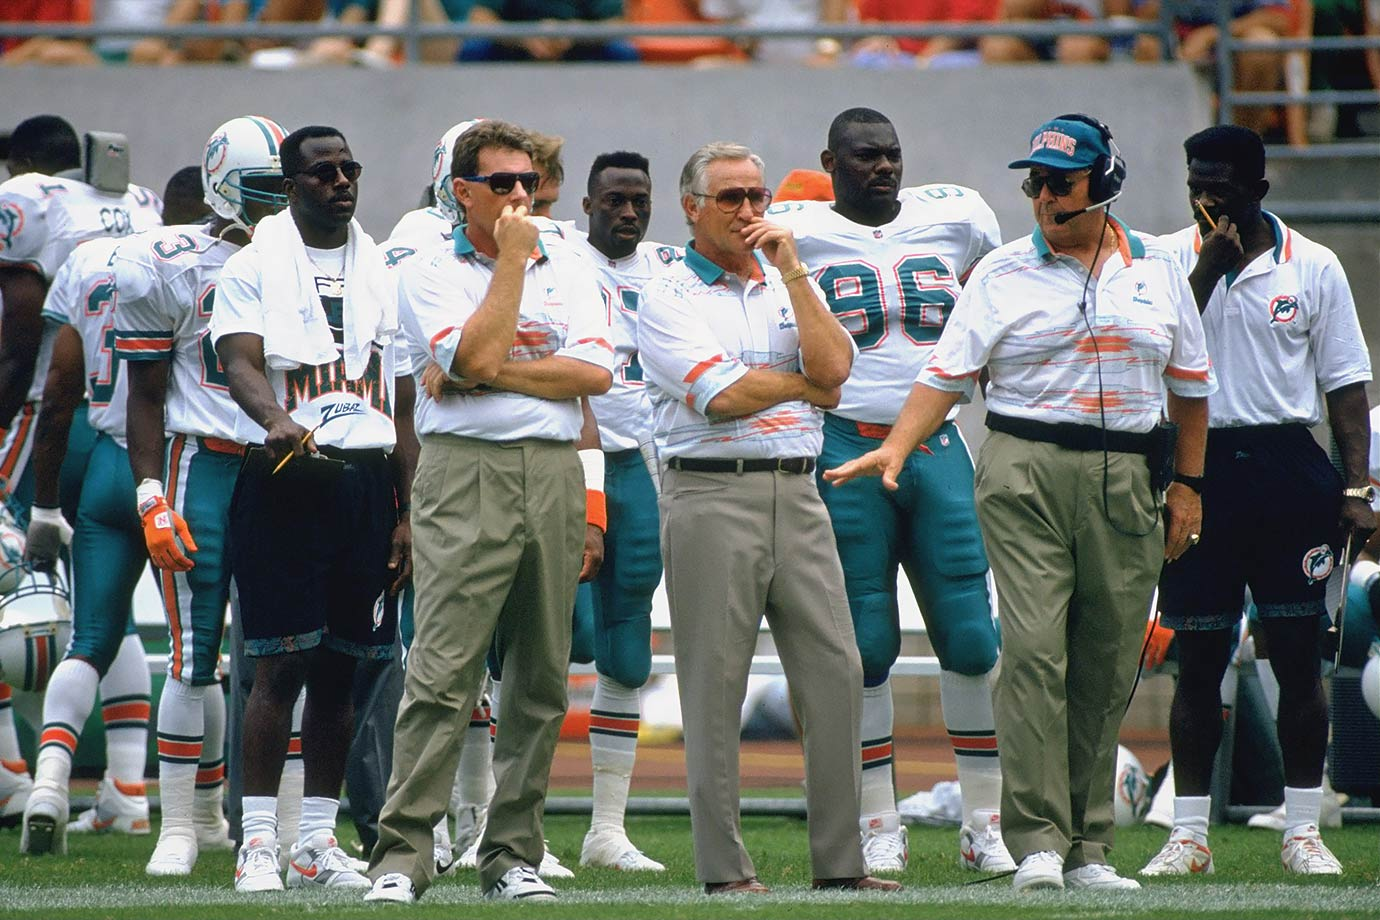 Sept. 20, 1992 — Miami Dolphins vs. Los Angeles Rams